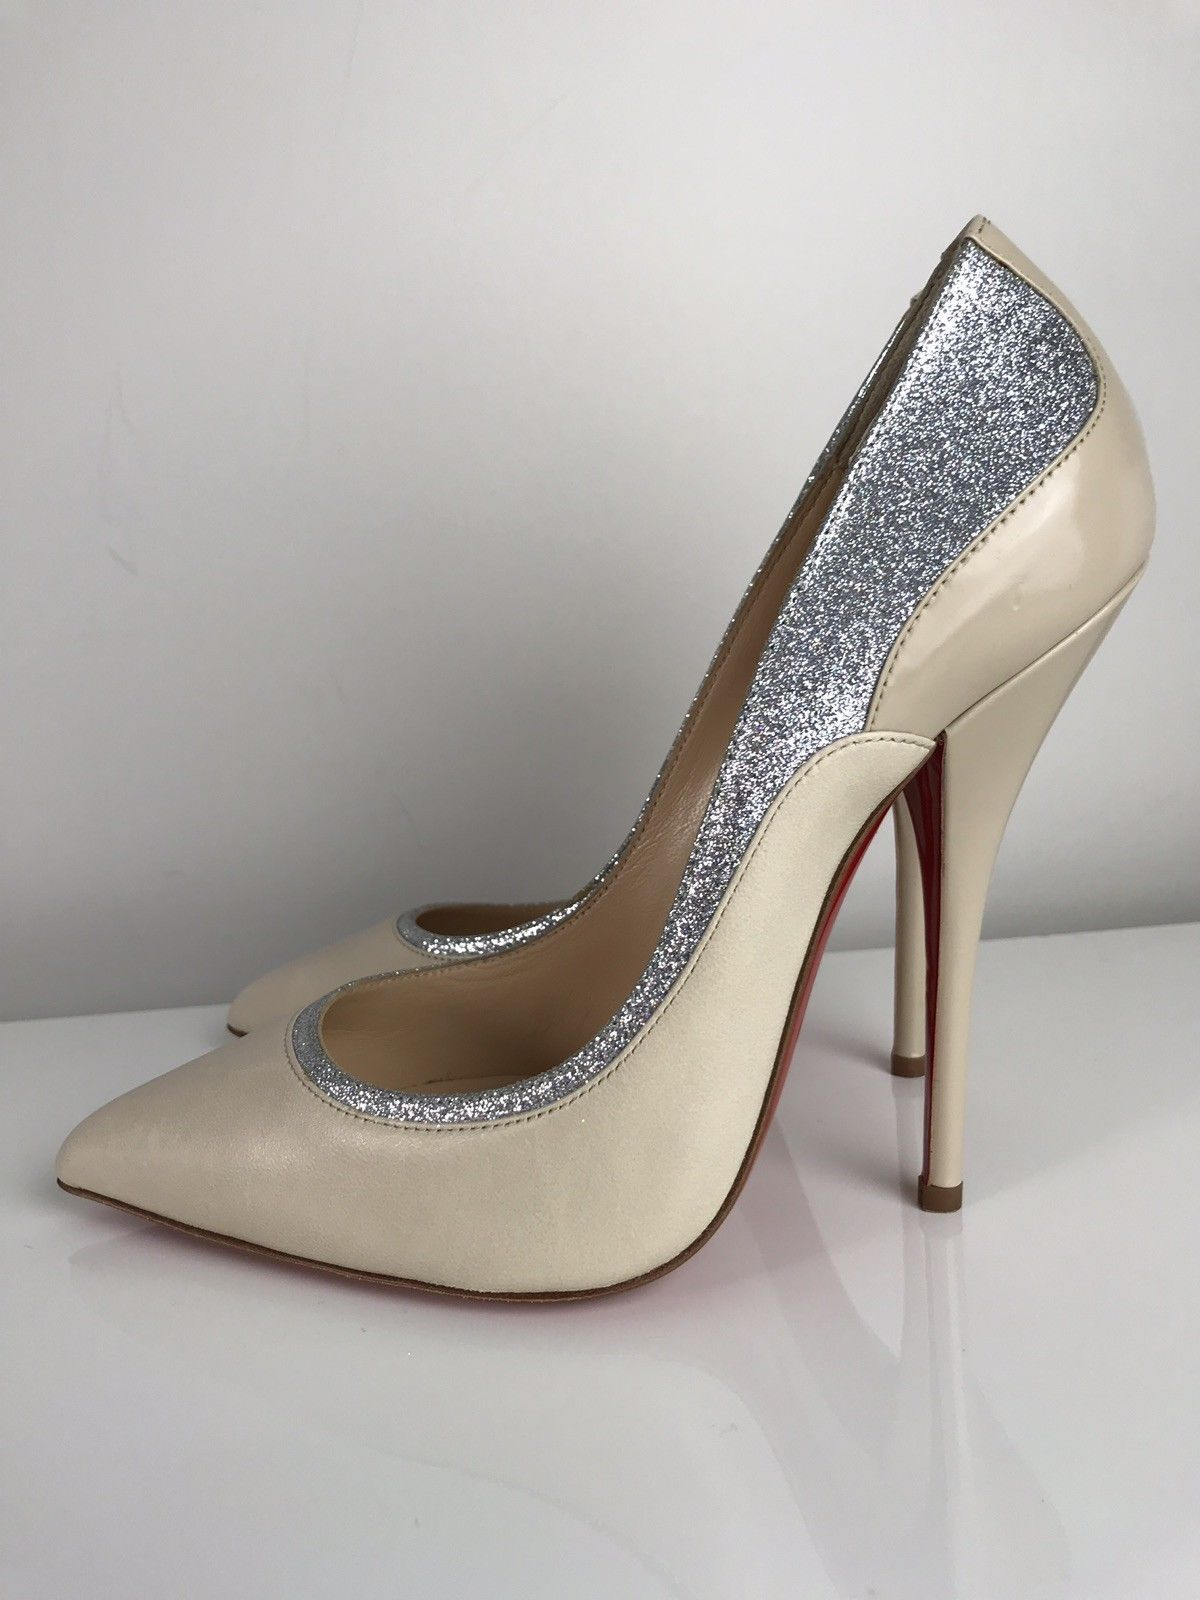 688dfc293f8 Christian Louboutin Tucsy 100 Glitter Beige Leather Heels in 2019 ...